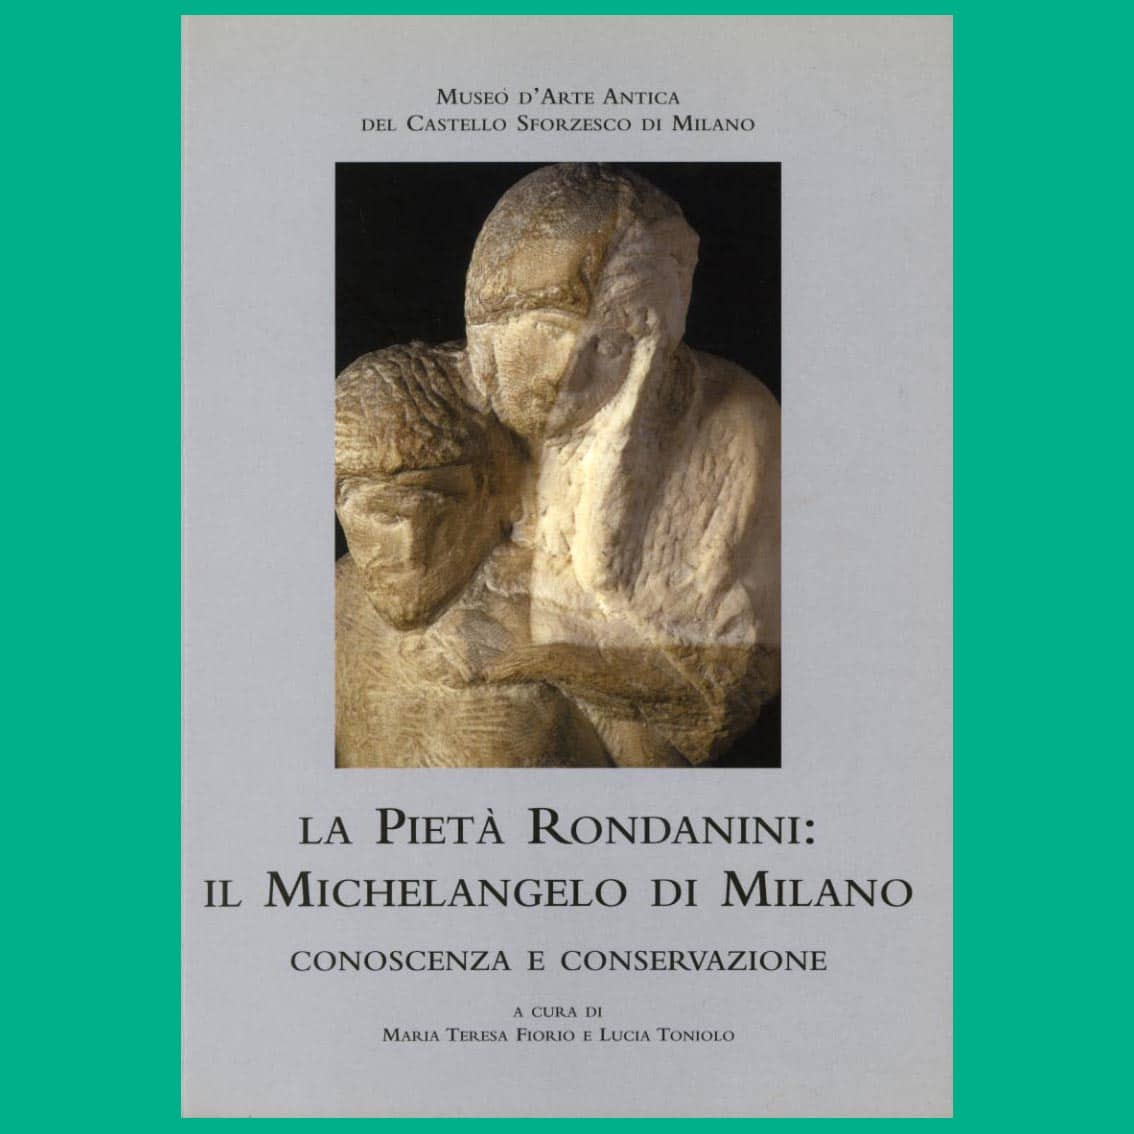 https://cbccoop.it/app/uploads/2017/06/Pietà-Rondanini-Michelangelo-di-Milano.jpg